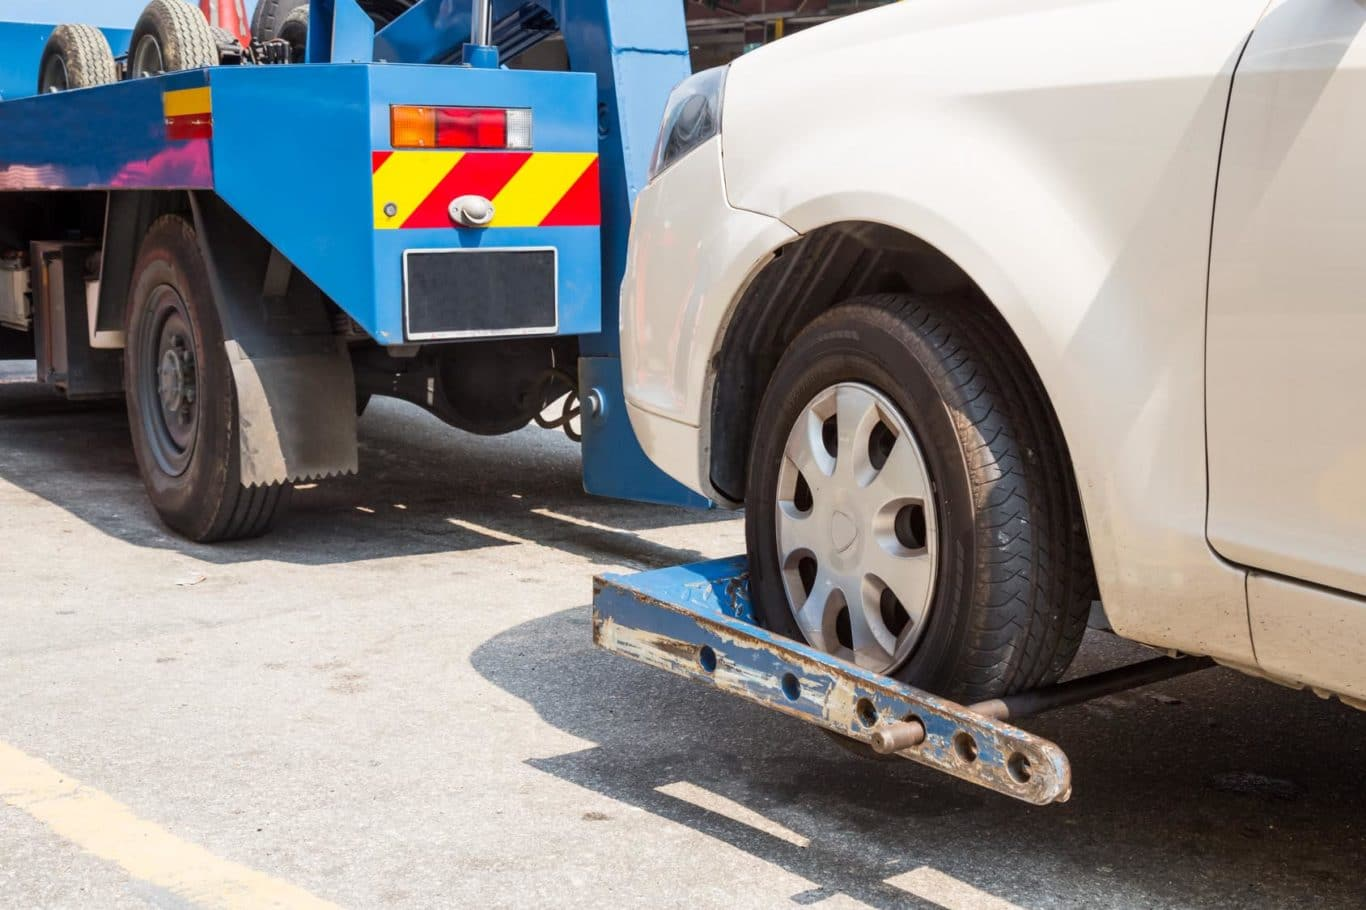 Tyrrelstown expert Car Towing services